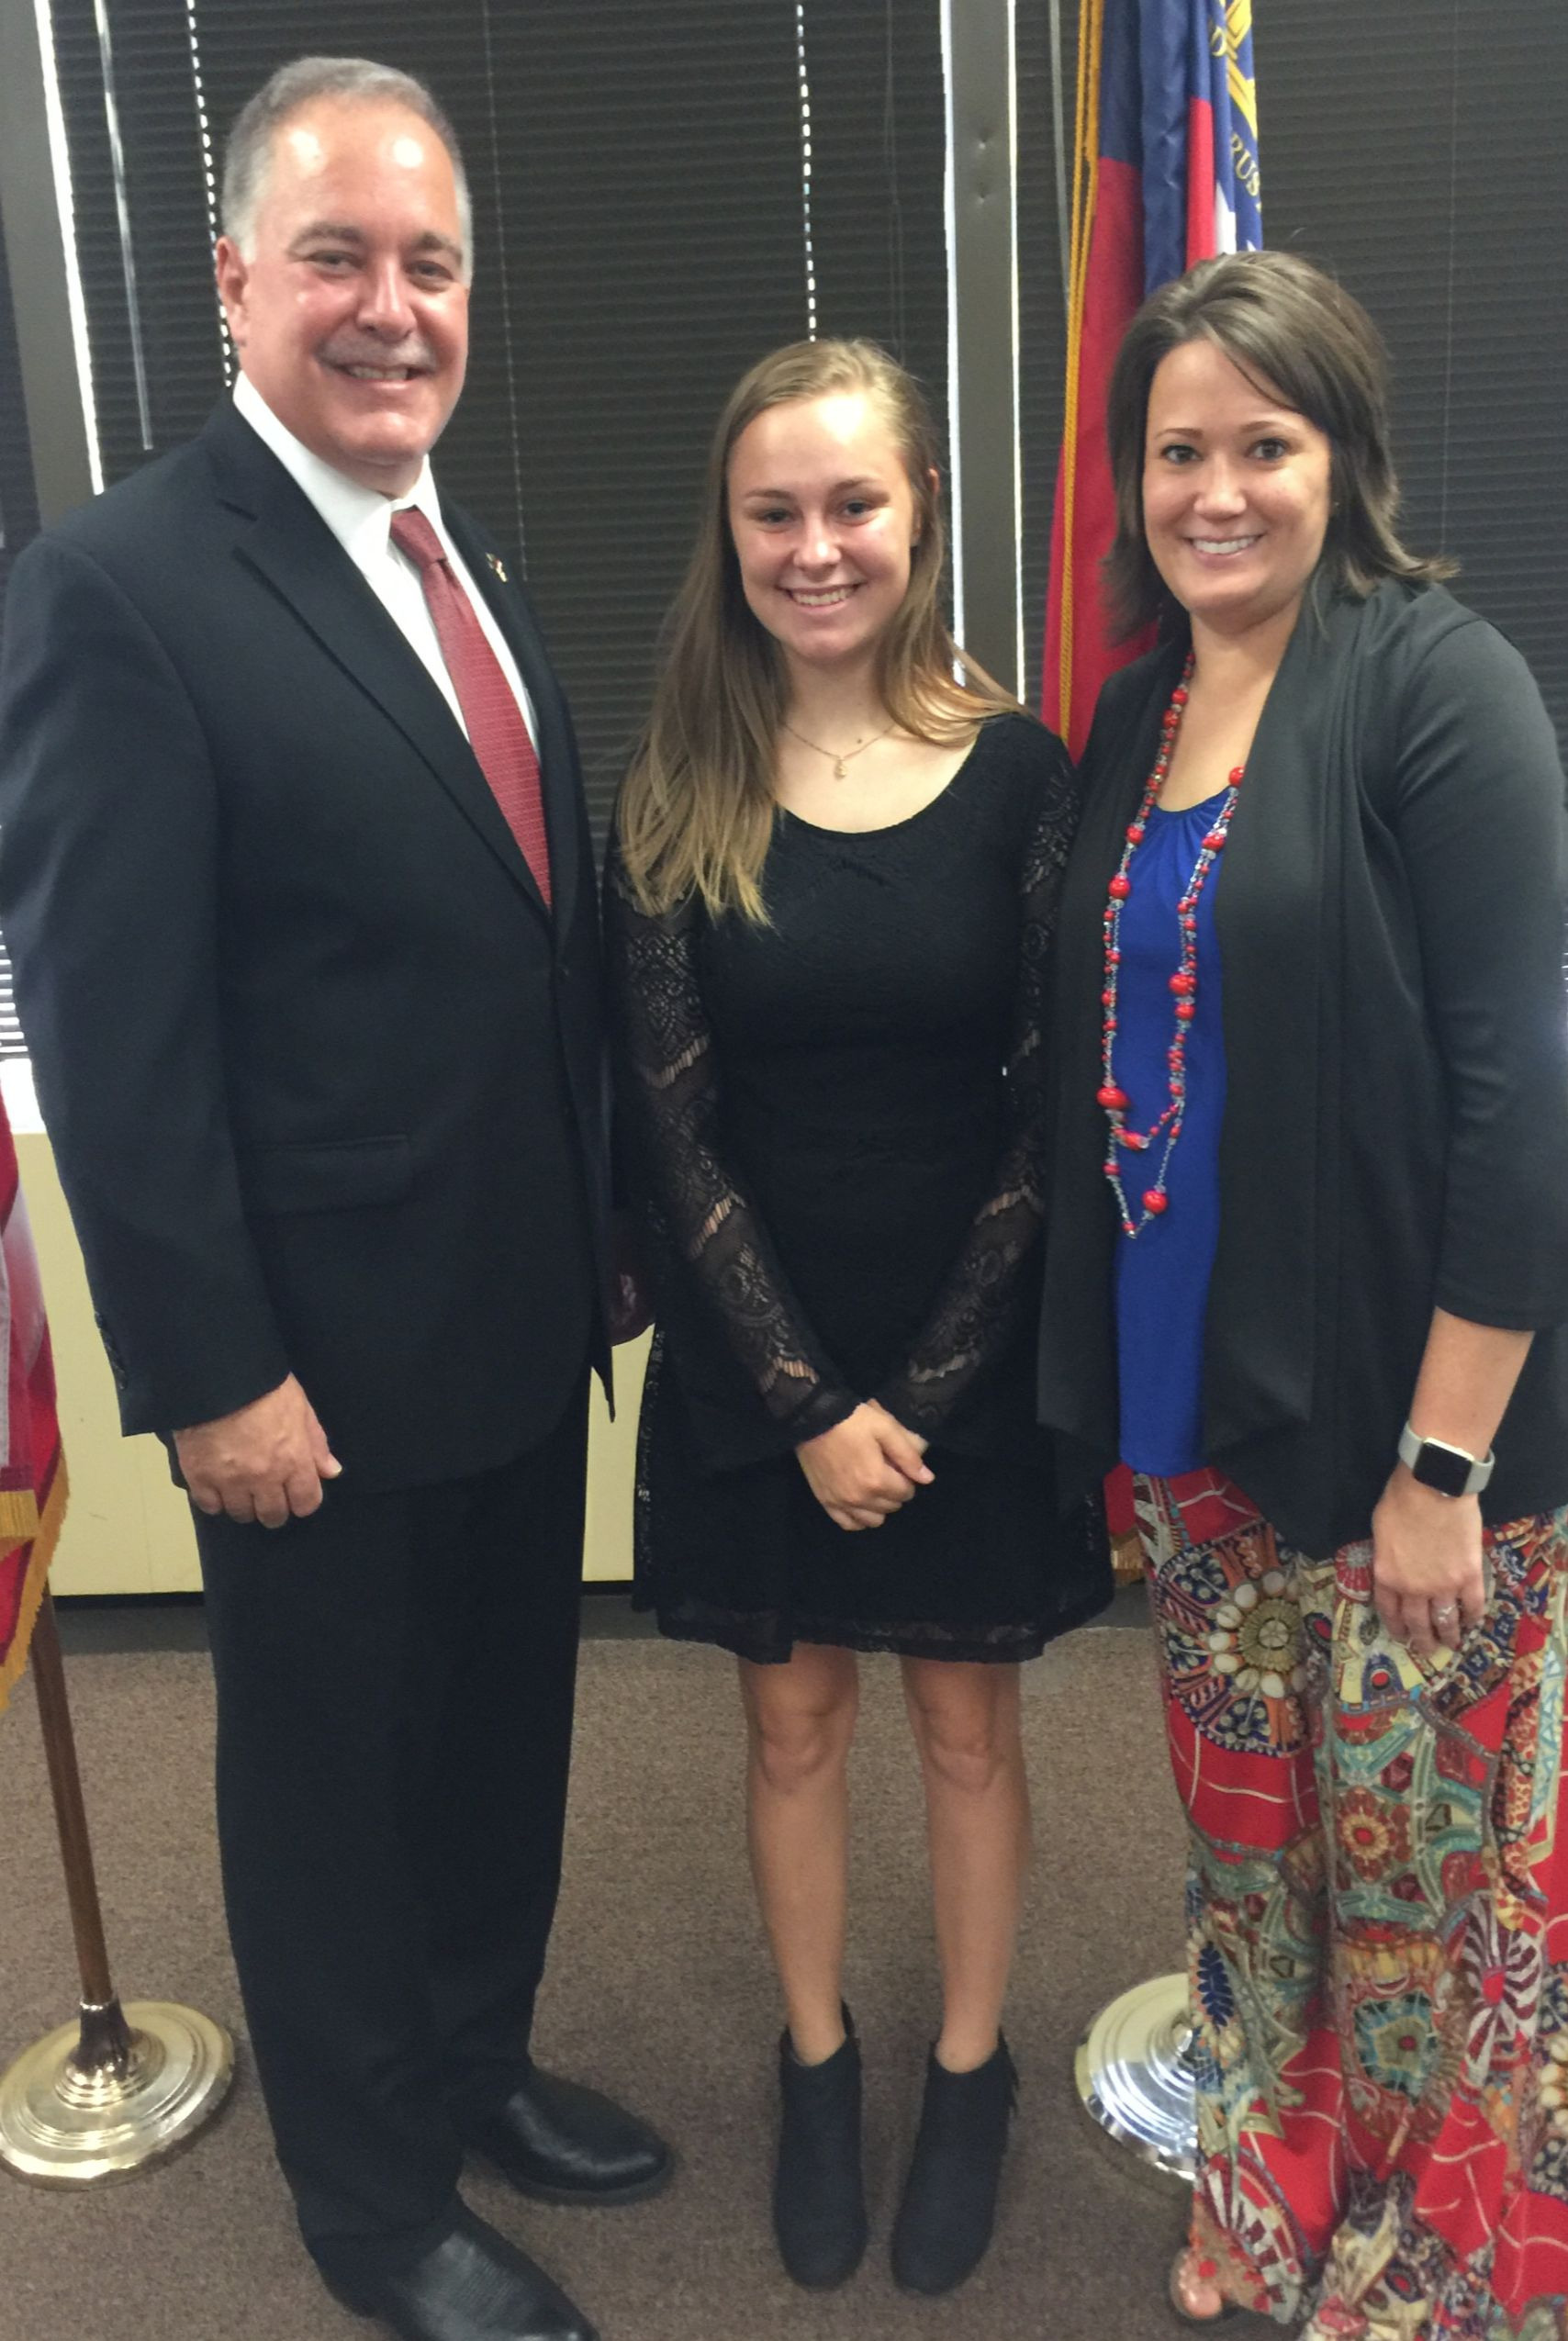 WCHS Student Attends State Superintendent Recognition Ceremony